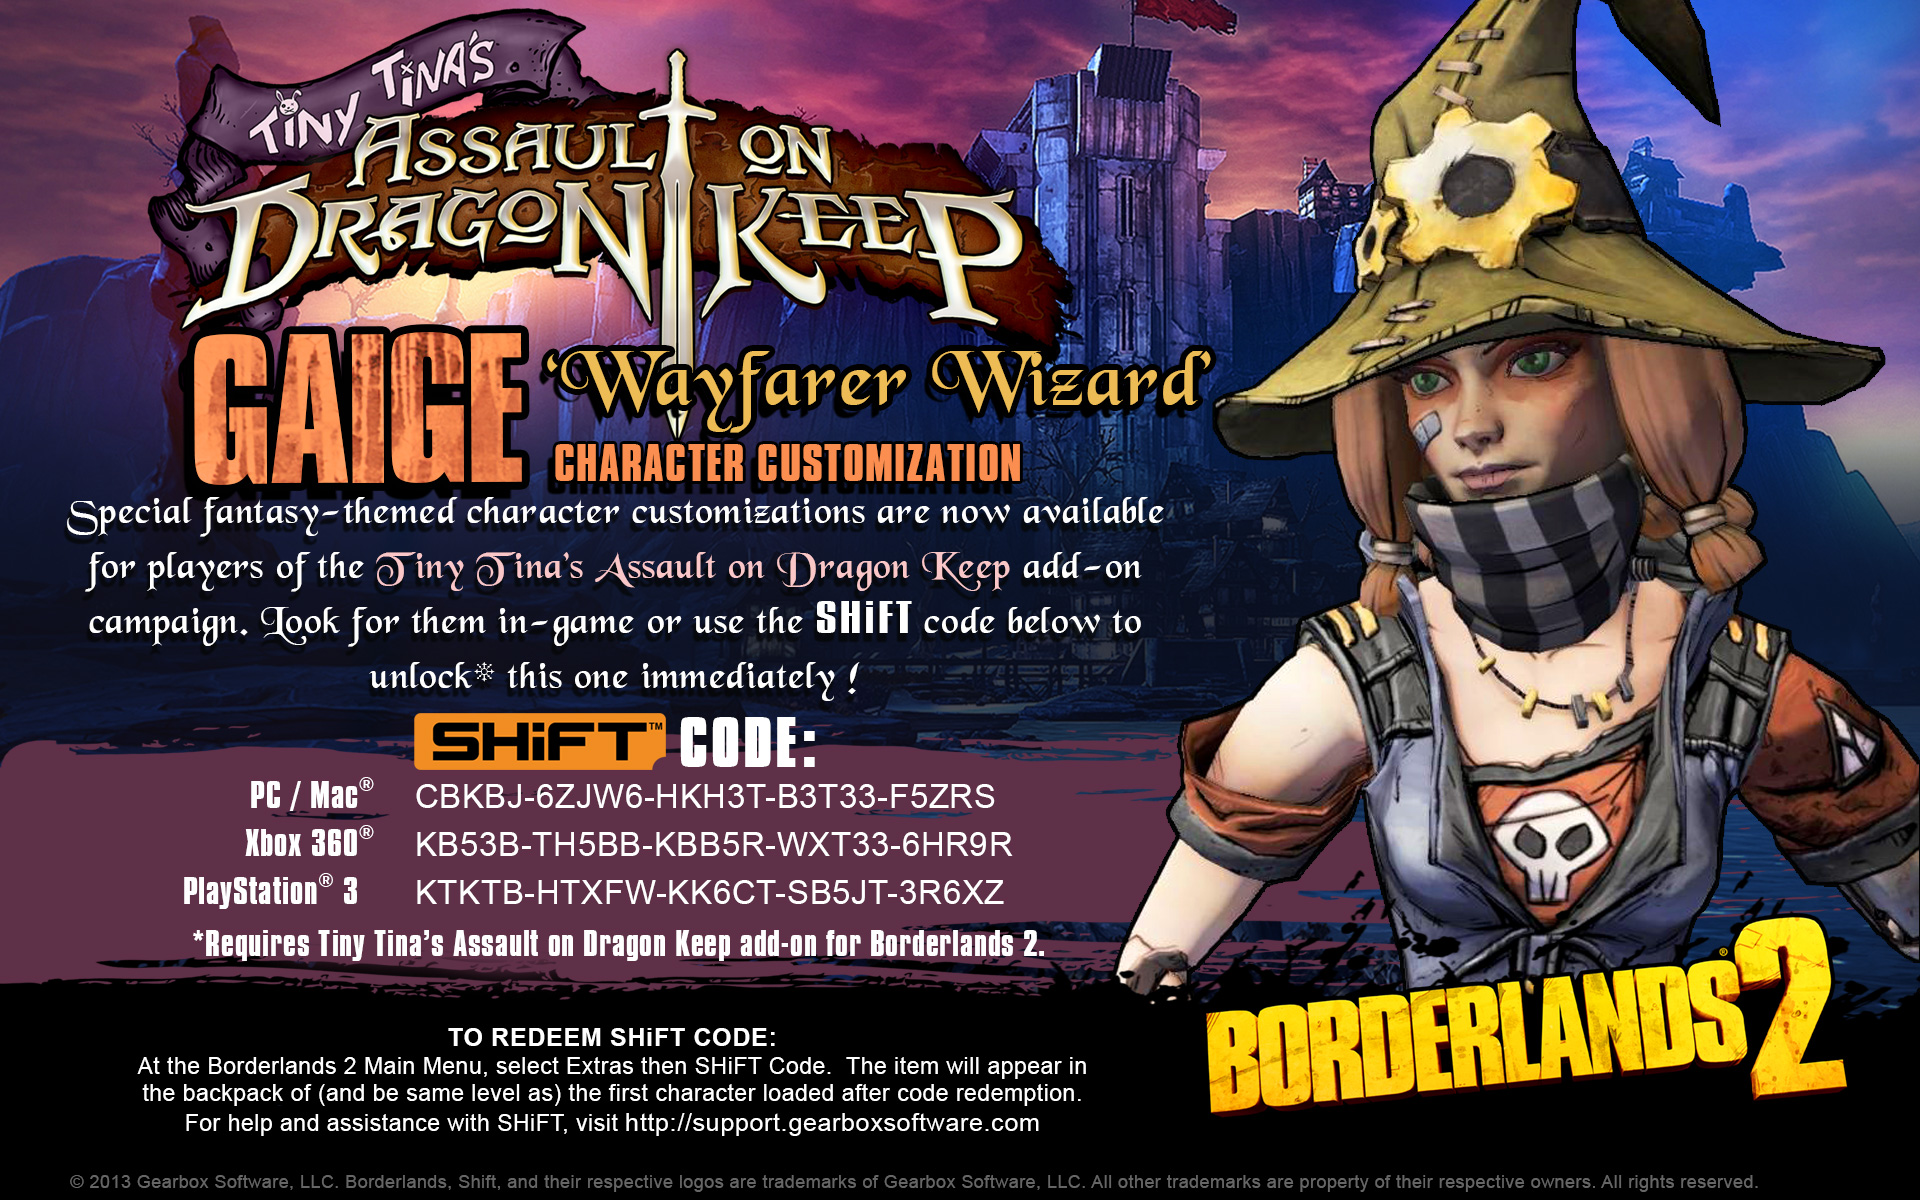 borderlands 2 shift codes 2019 wiki